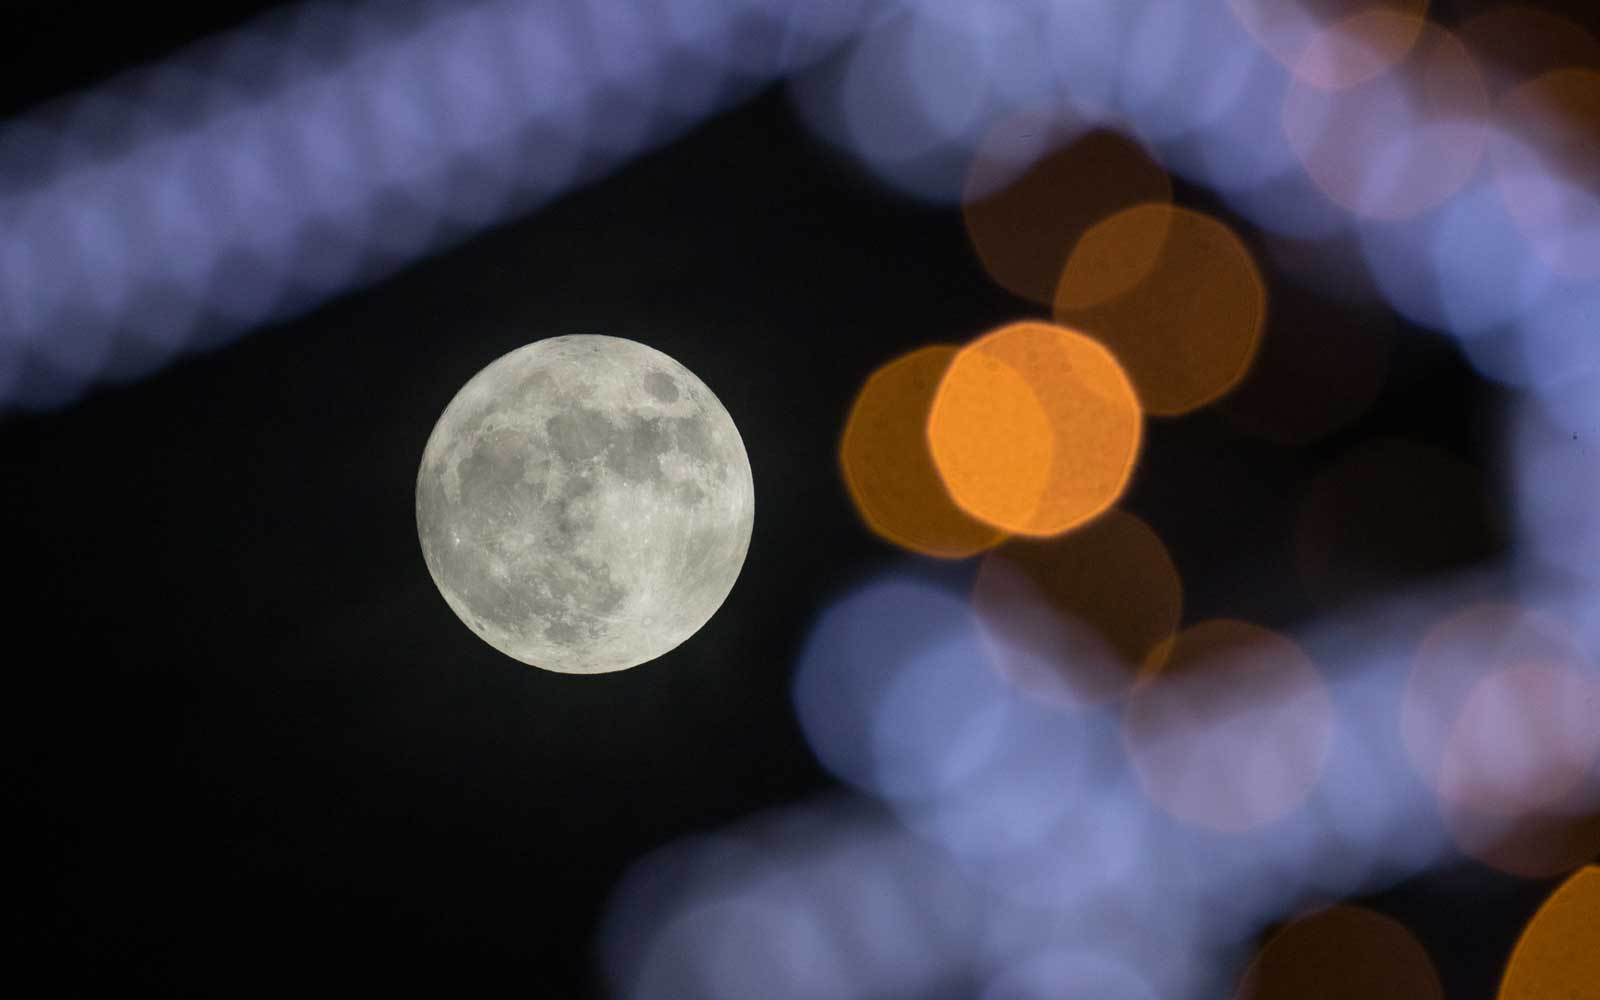 A Cold Supermoon Is Coming to Welcome the Winter Solstice — and It'll Be the Longest Full Moon of 2018